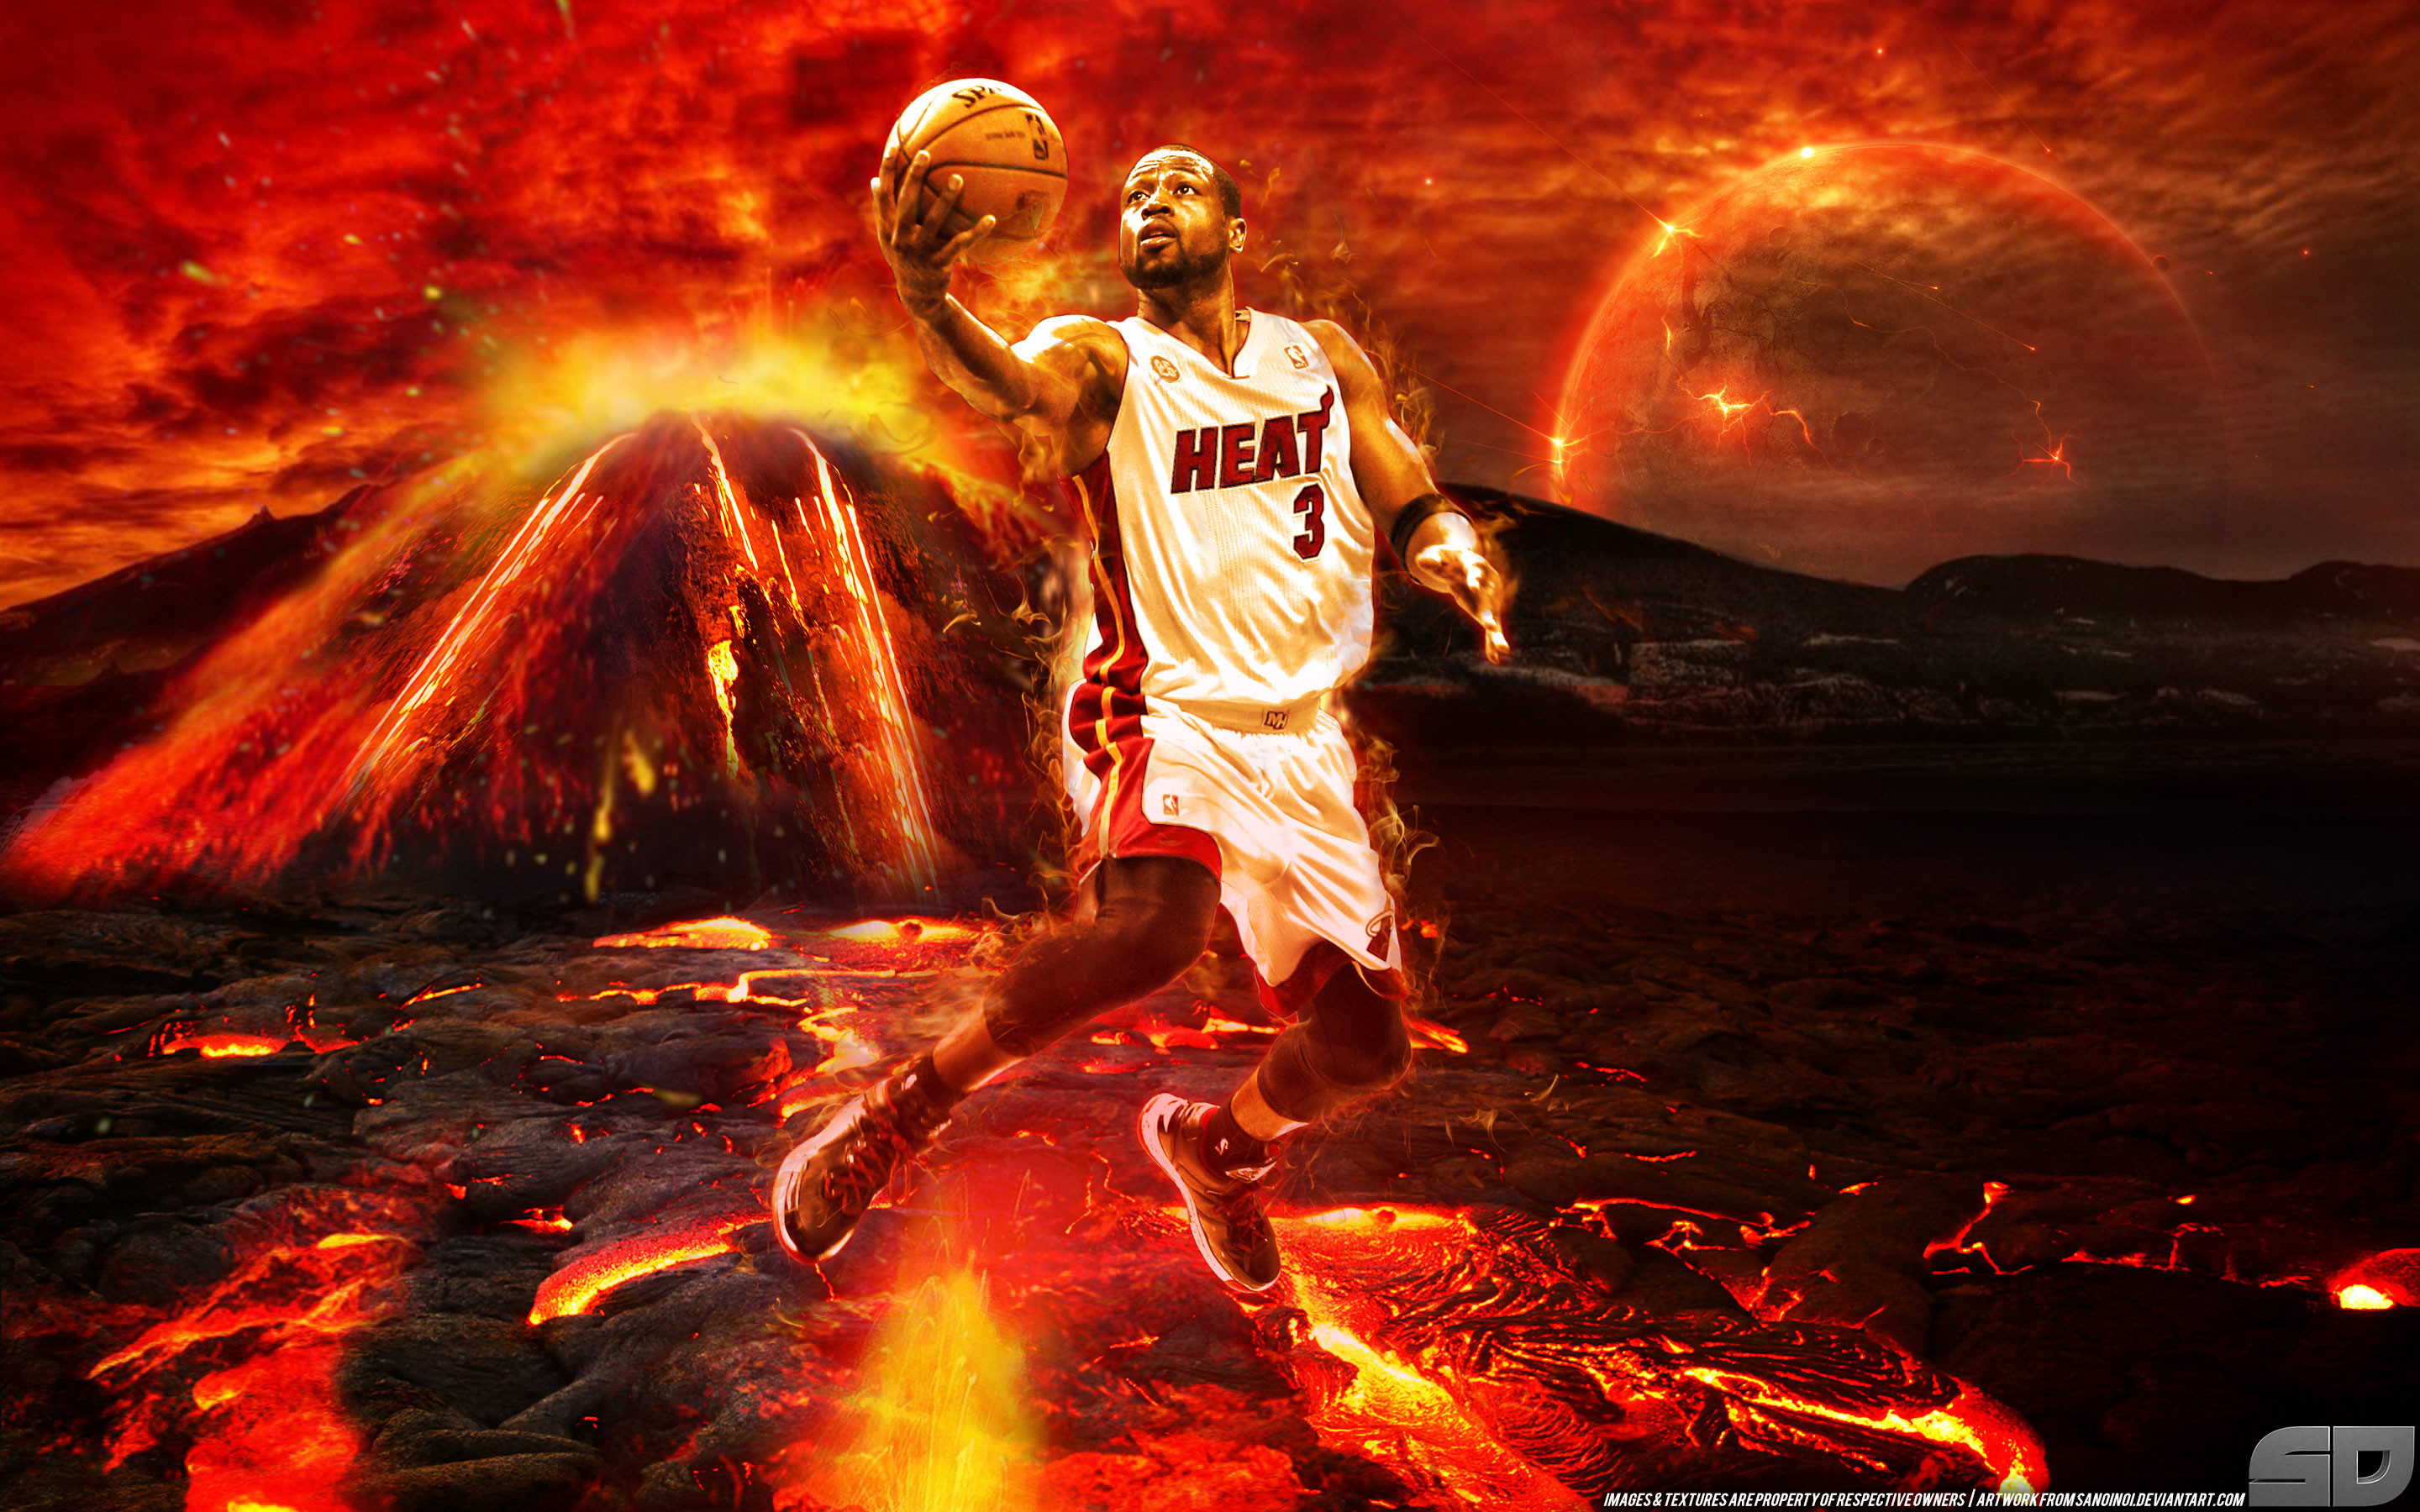 Miami Heat Wallpaper Iphone X Cool Basketball Wallpapers For Iphone 60 Images